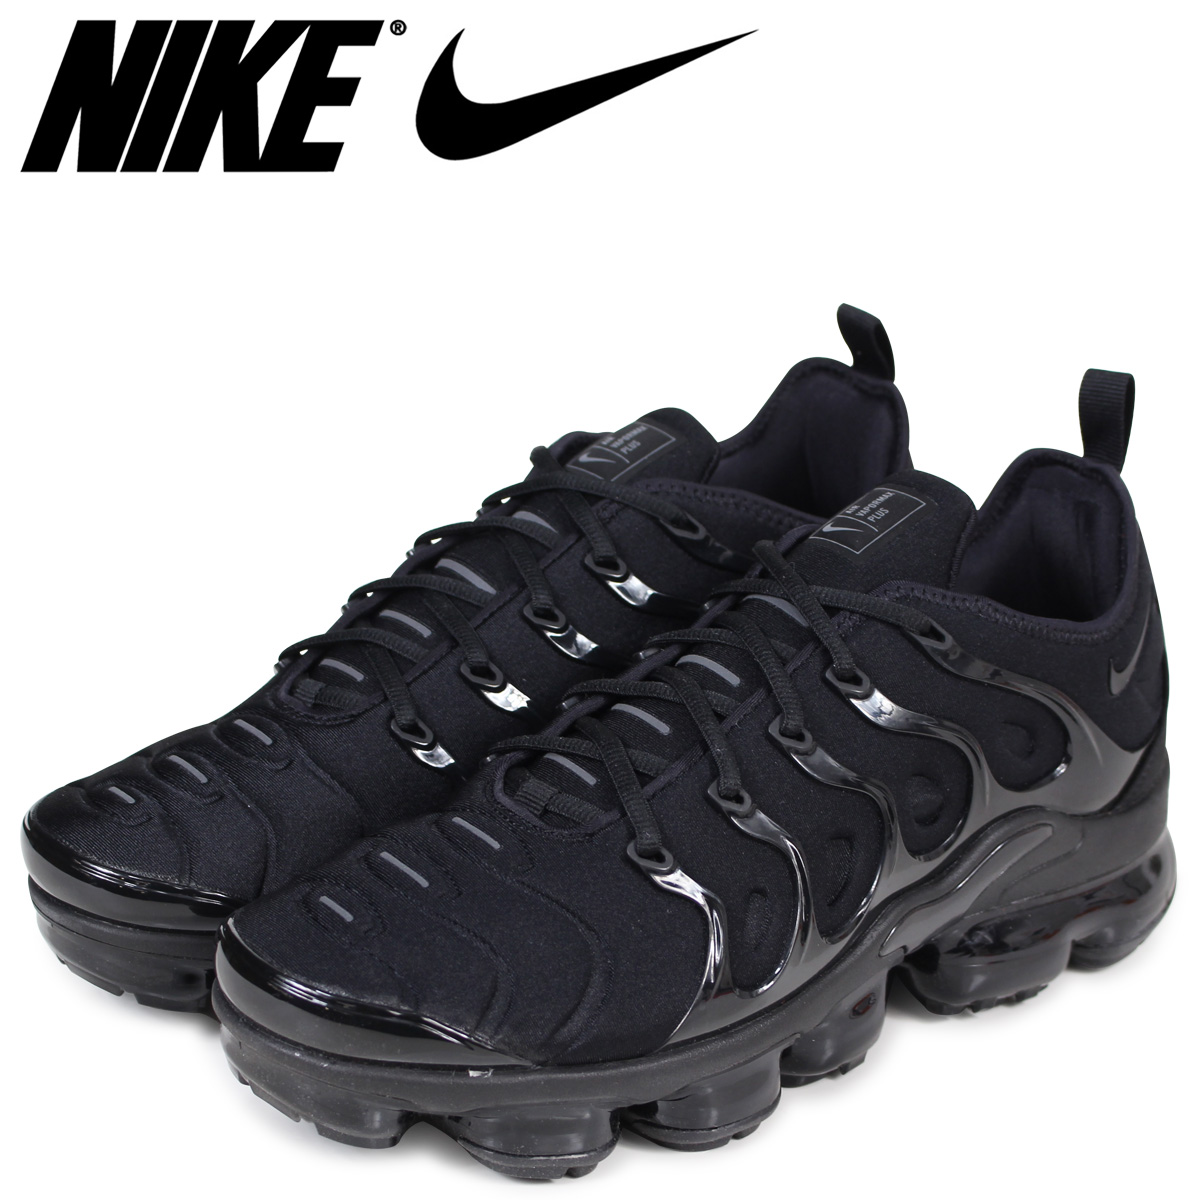 buy popular 5d5f0 651cb NIKE Nike air vapor max plus sneakers men AIR VAPORMAX PLUS 924,453-004  black ...